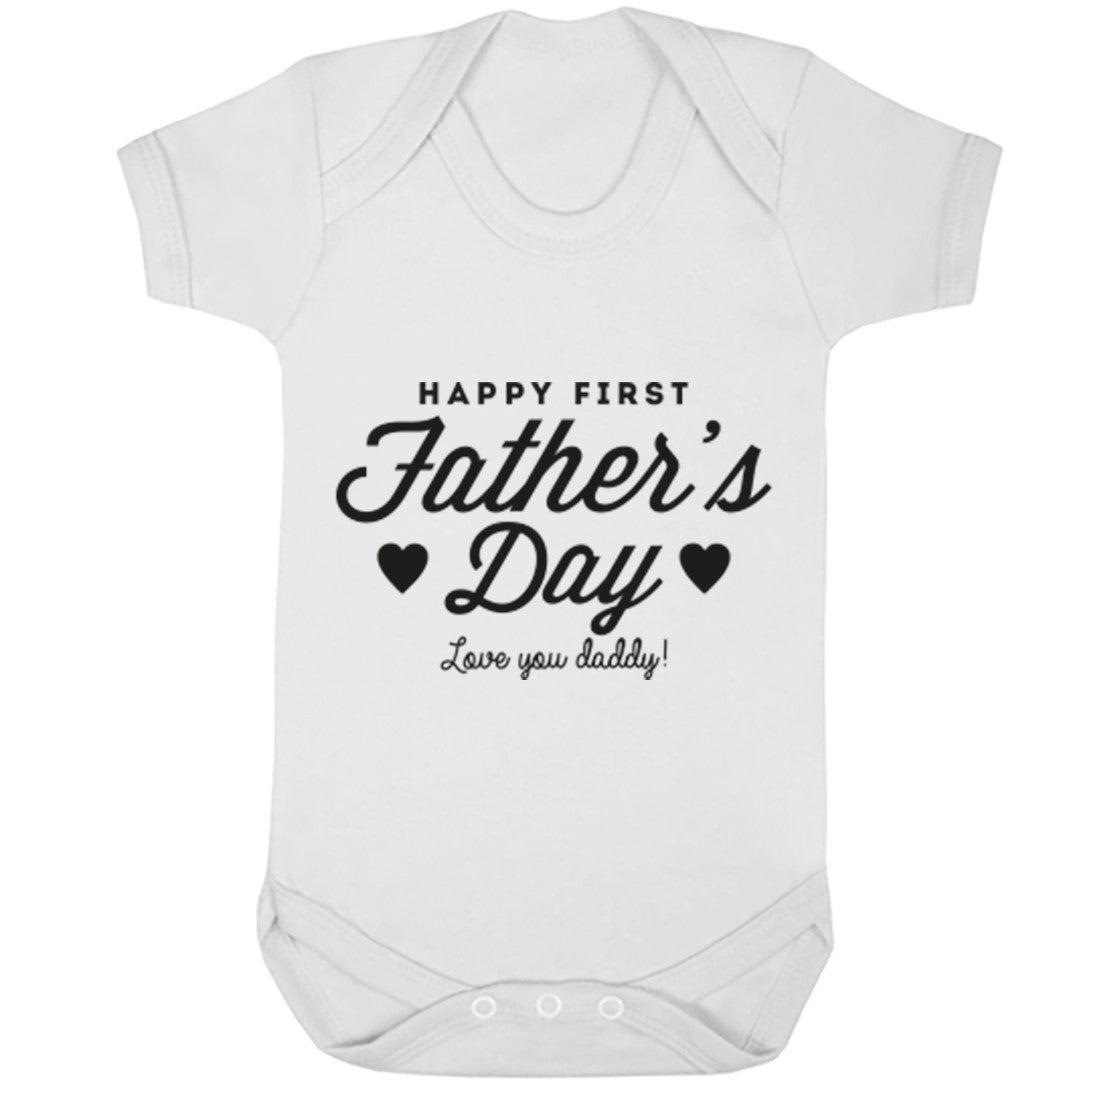 Happy First Father's Day, Love You Mummy Baby Vest K1661 - Illustrated Identity Ltd.